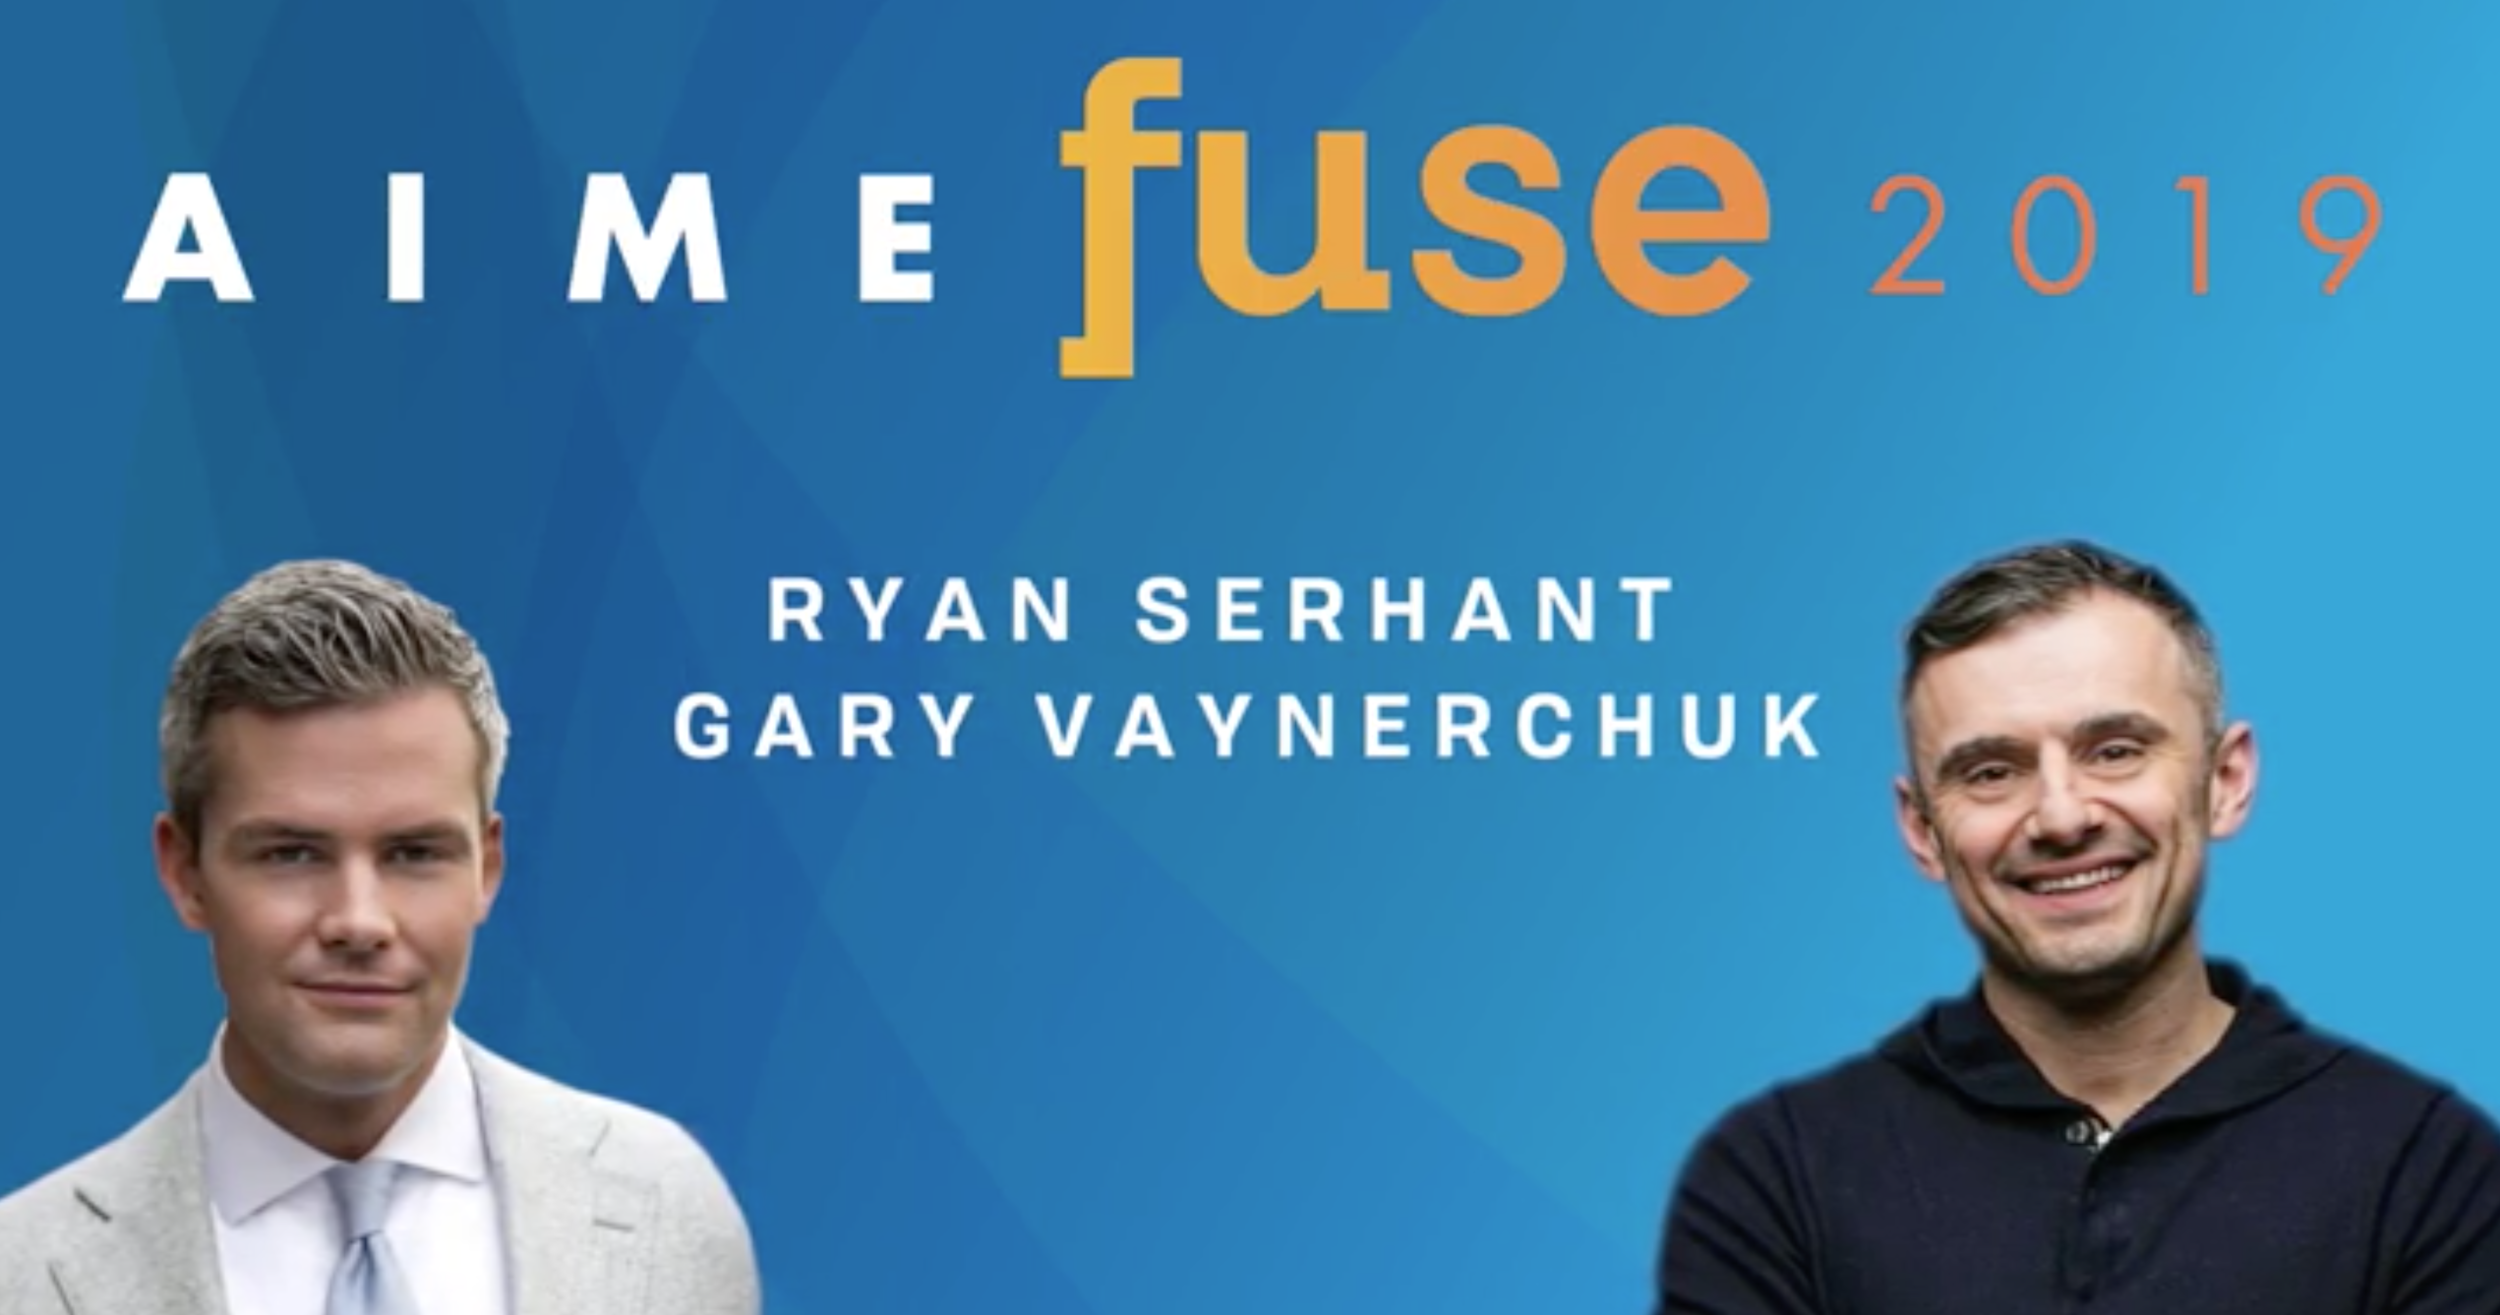 """Gary Vaynerchuk, Ryan Serhant bringing star power to AIME Fuse National Conference in October"" - - HOUSINGWIRE"